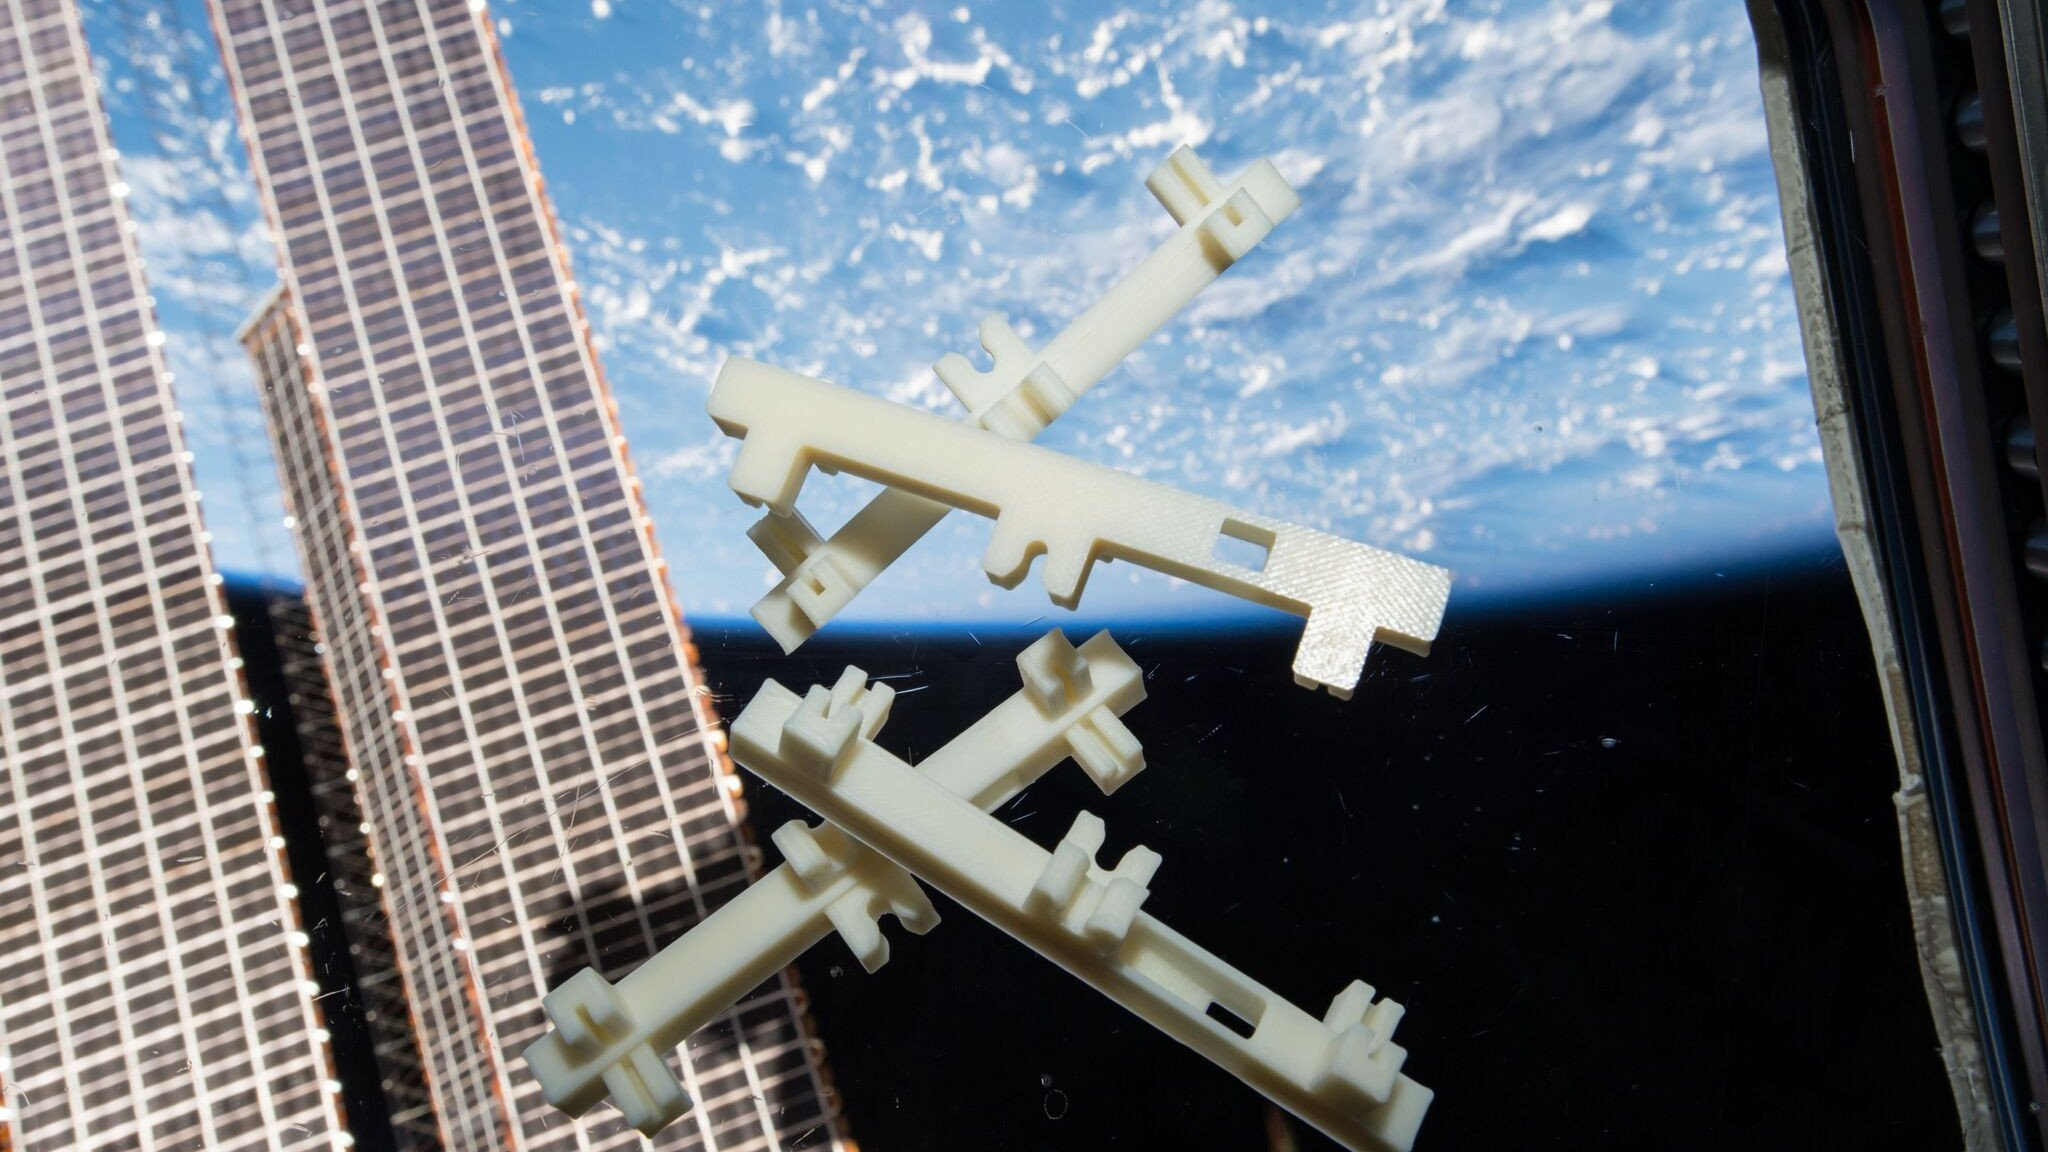 Once Launched in Space, MakerSat-0 Will Collect Data on 3D Printing Materials | All3DP